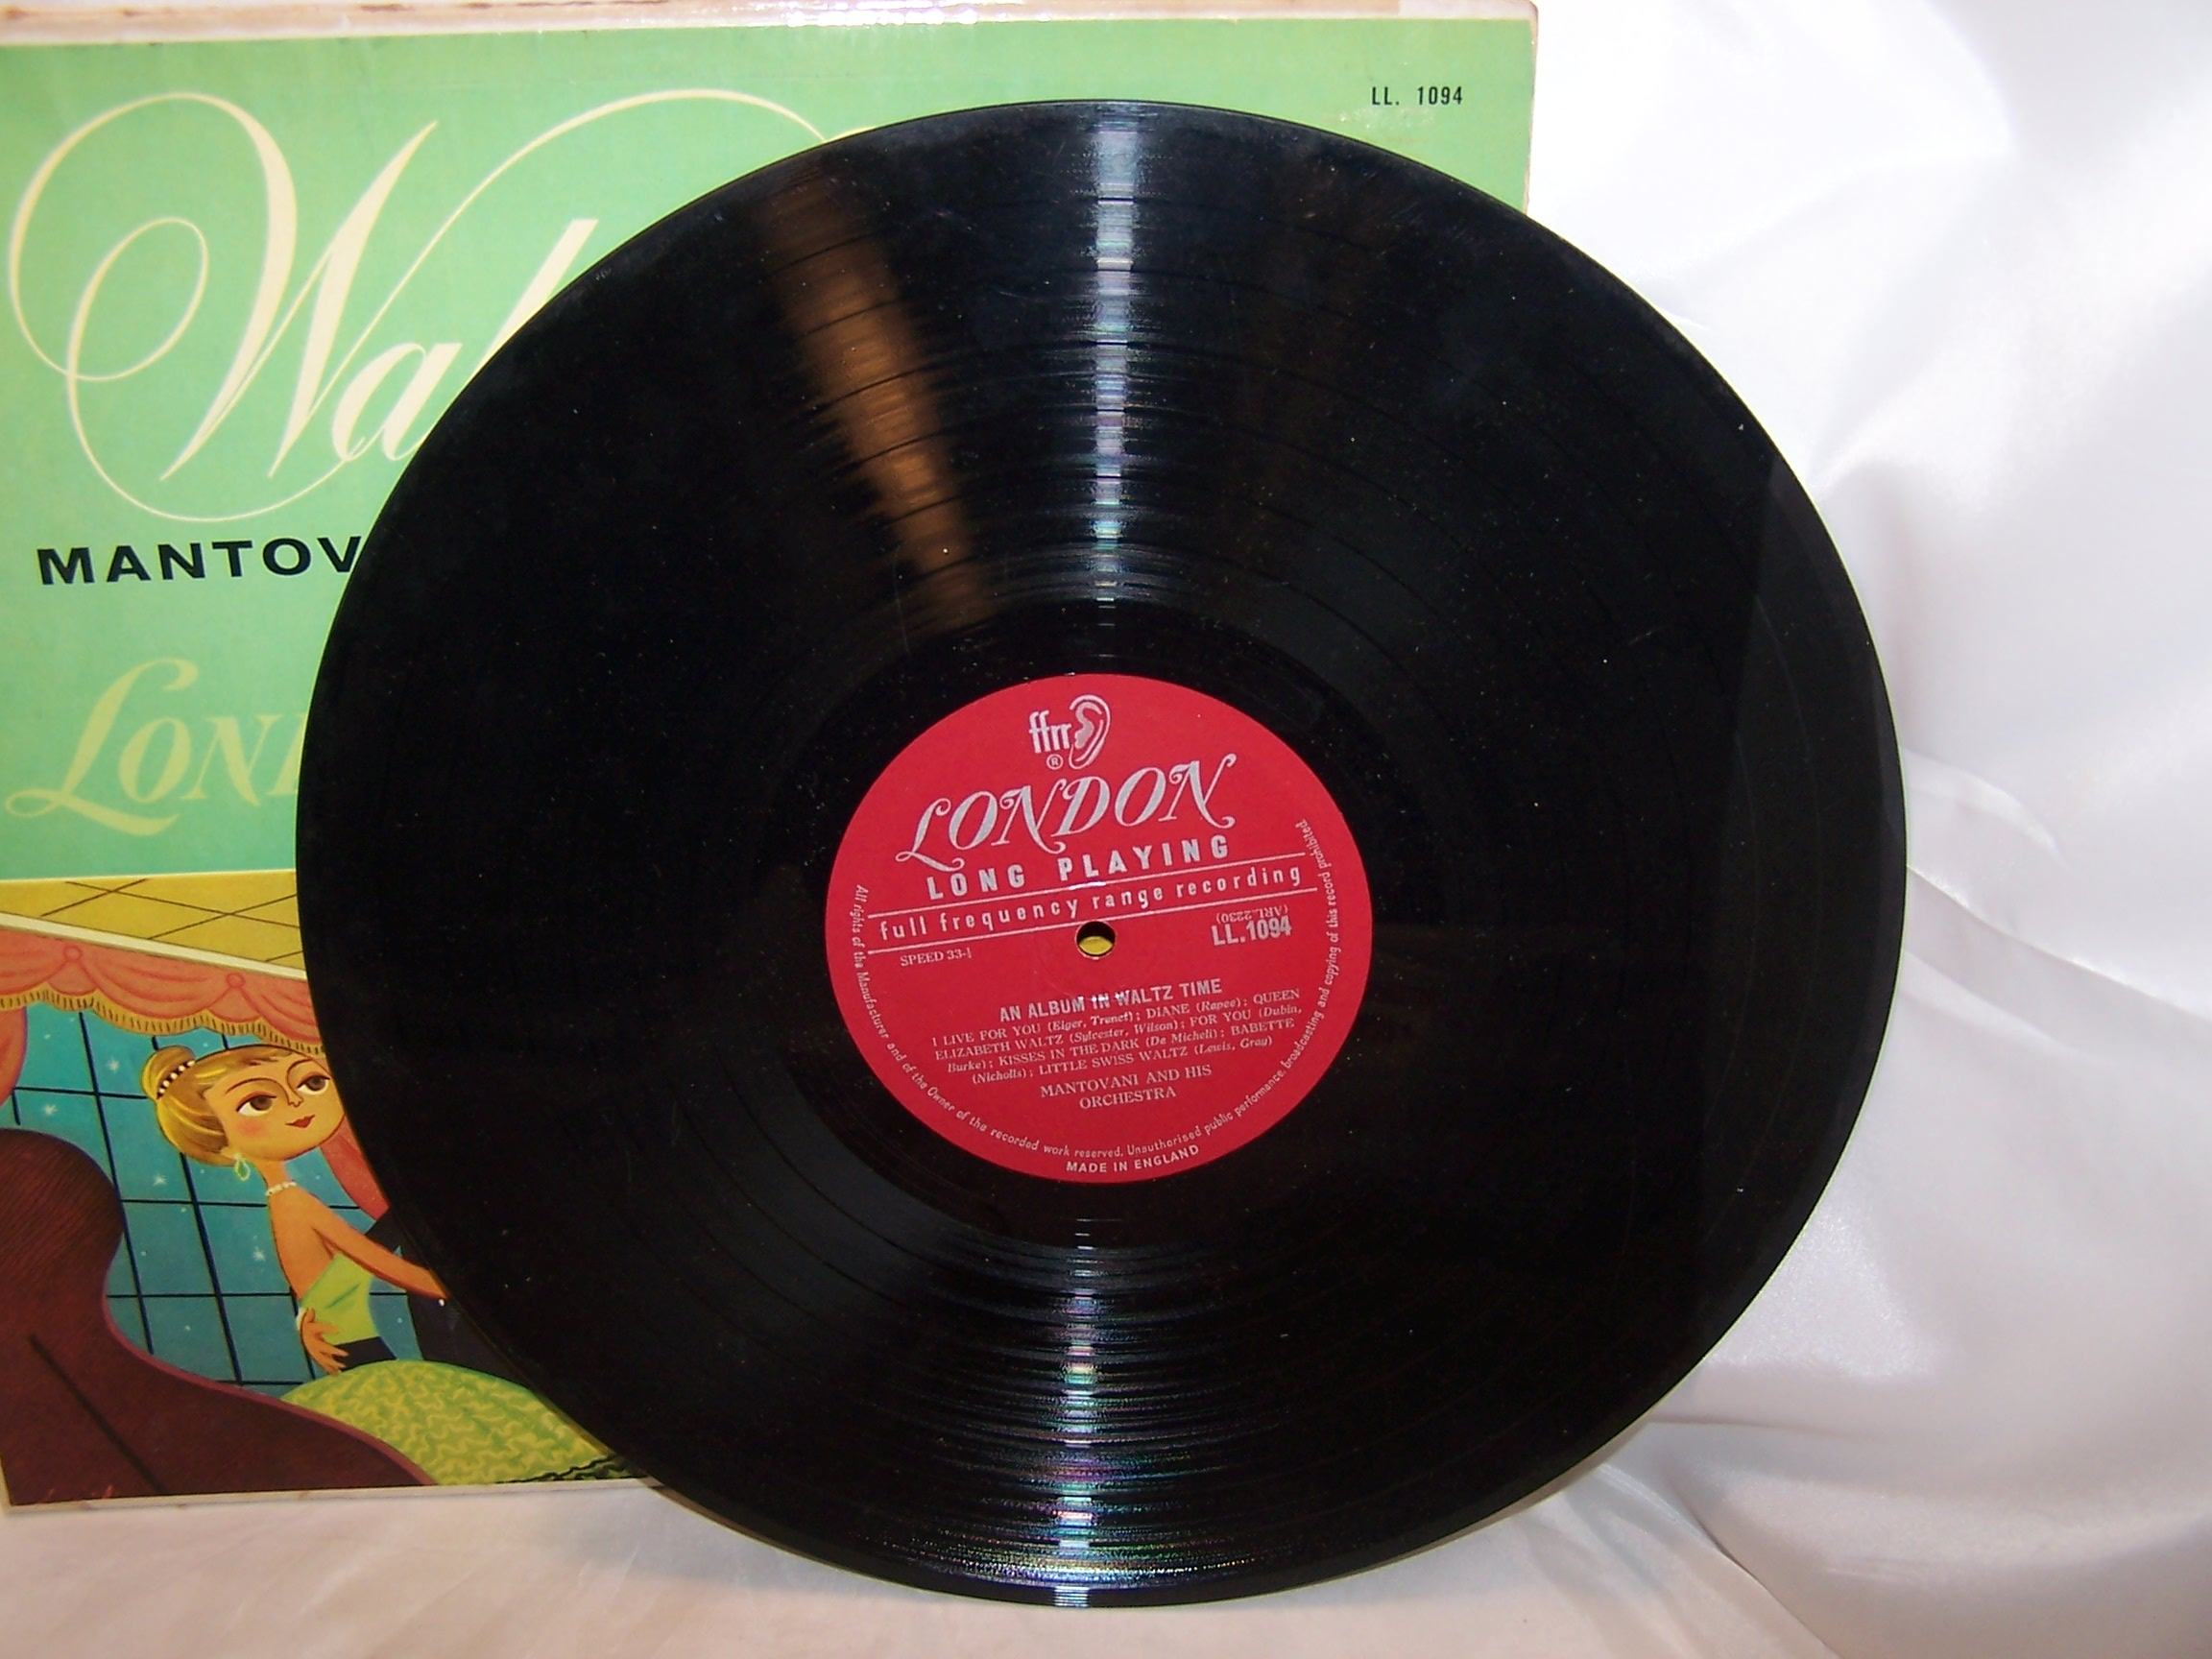 Image 2 of Mantovani and Orchestra, Waltz Time, England, Vintage